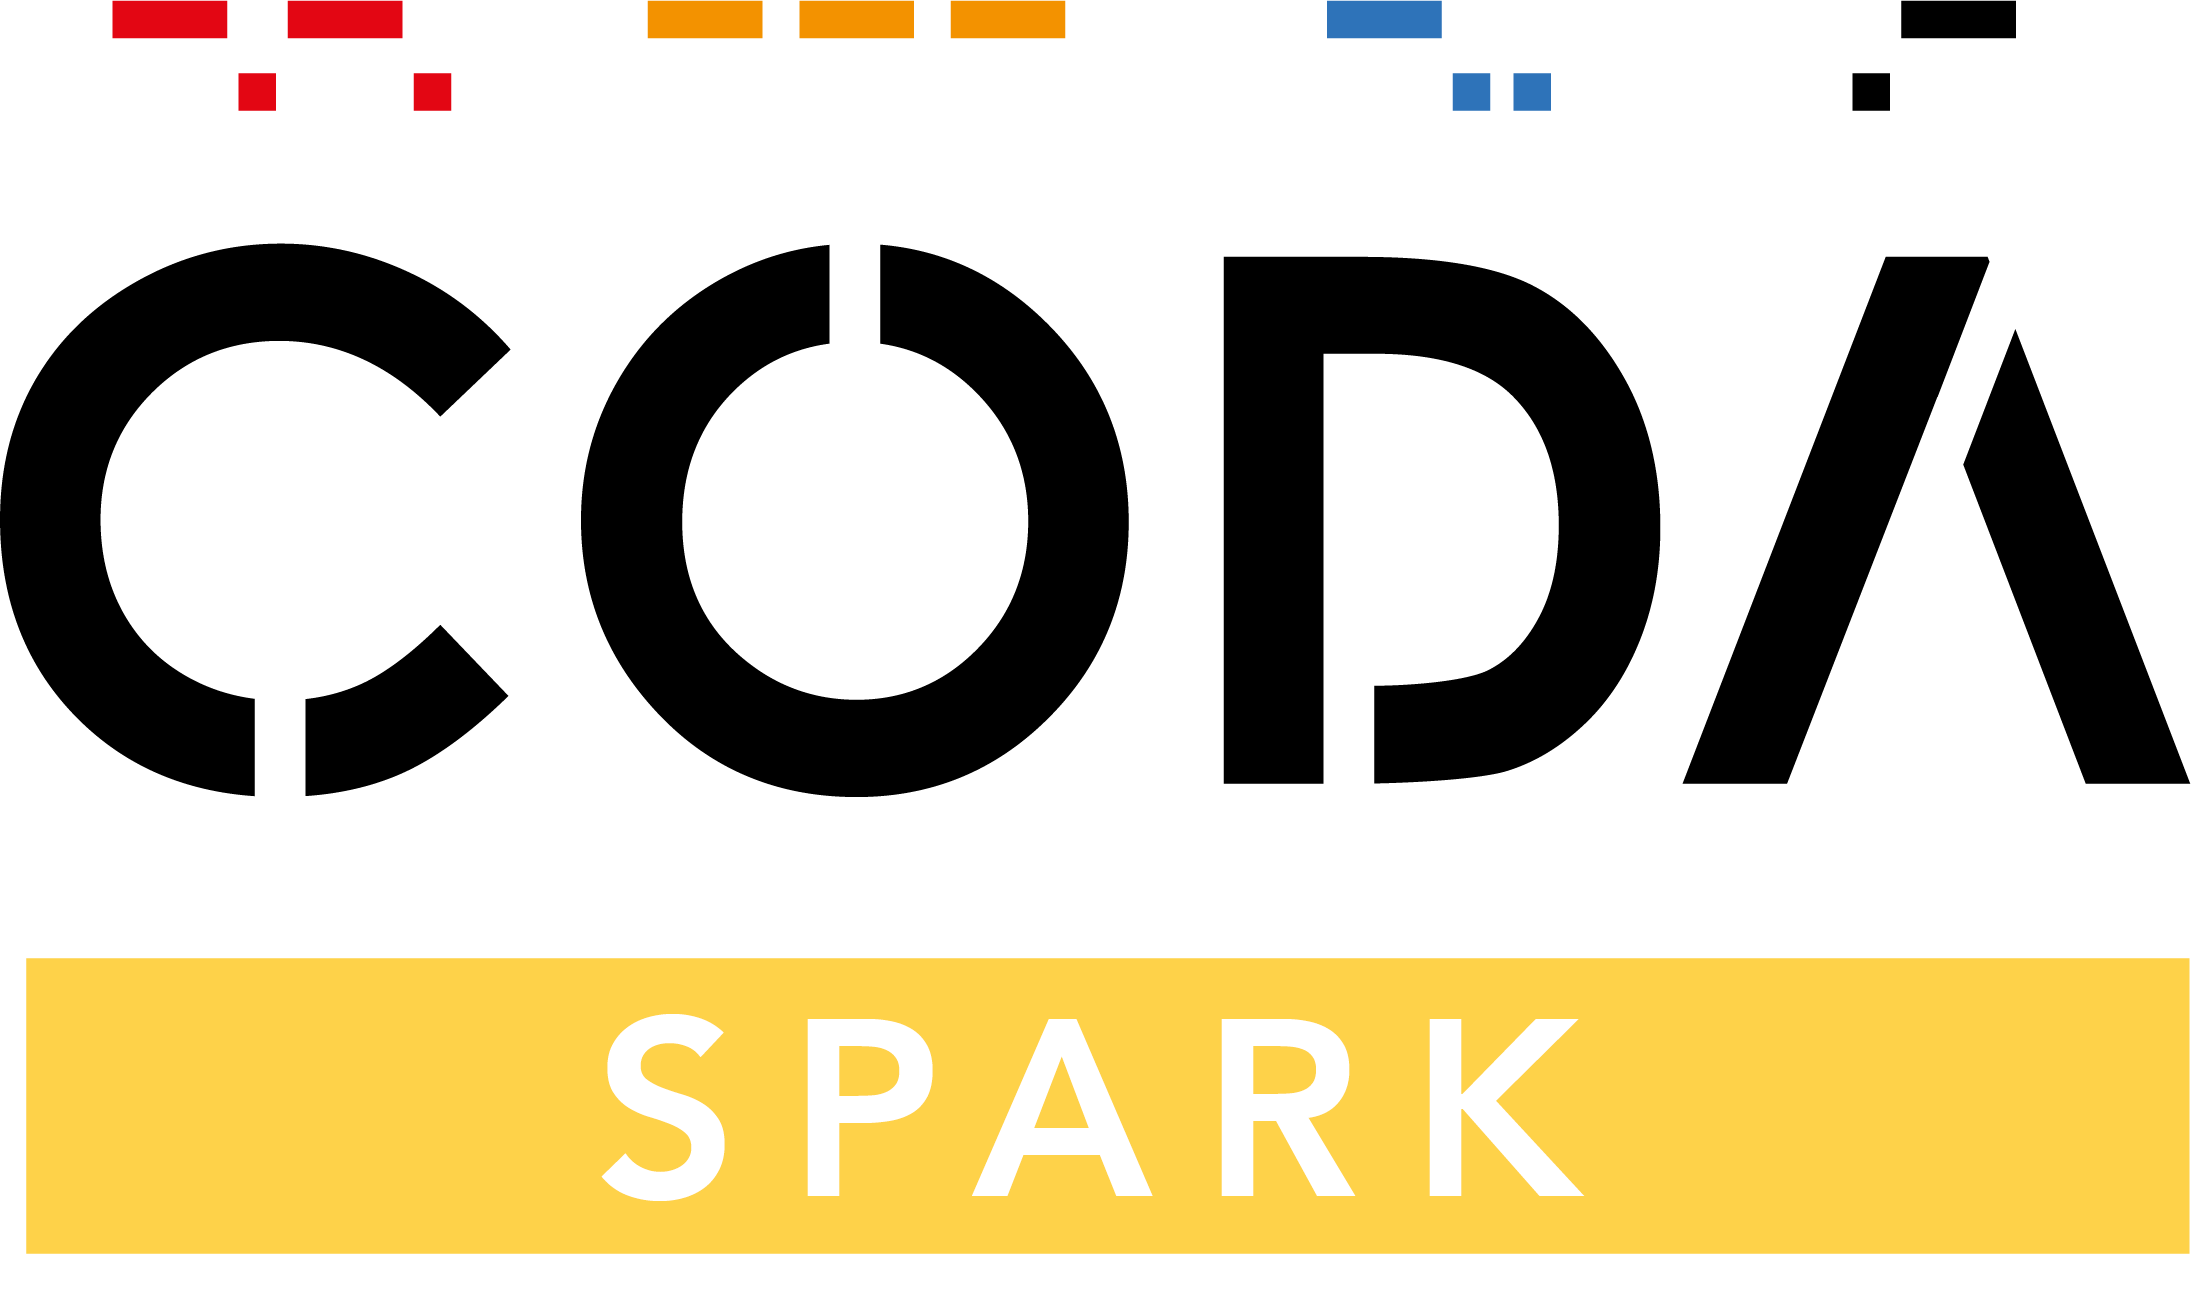 CODA_SPARK_11_INCH_WINDOWS_10_LAPTOP